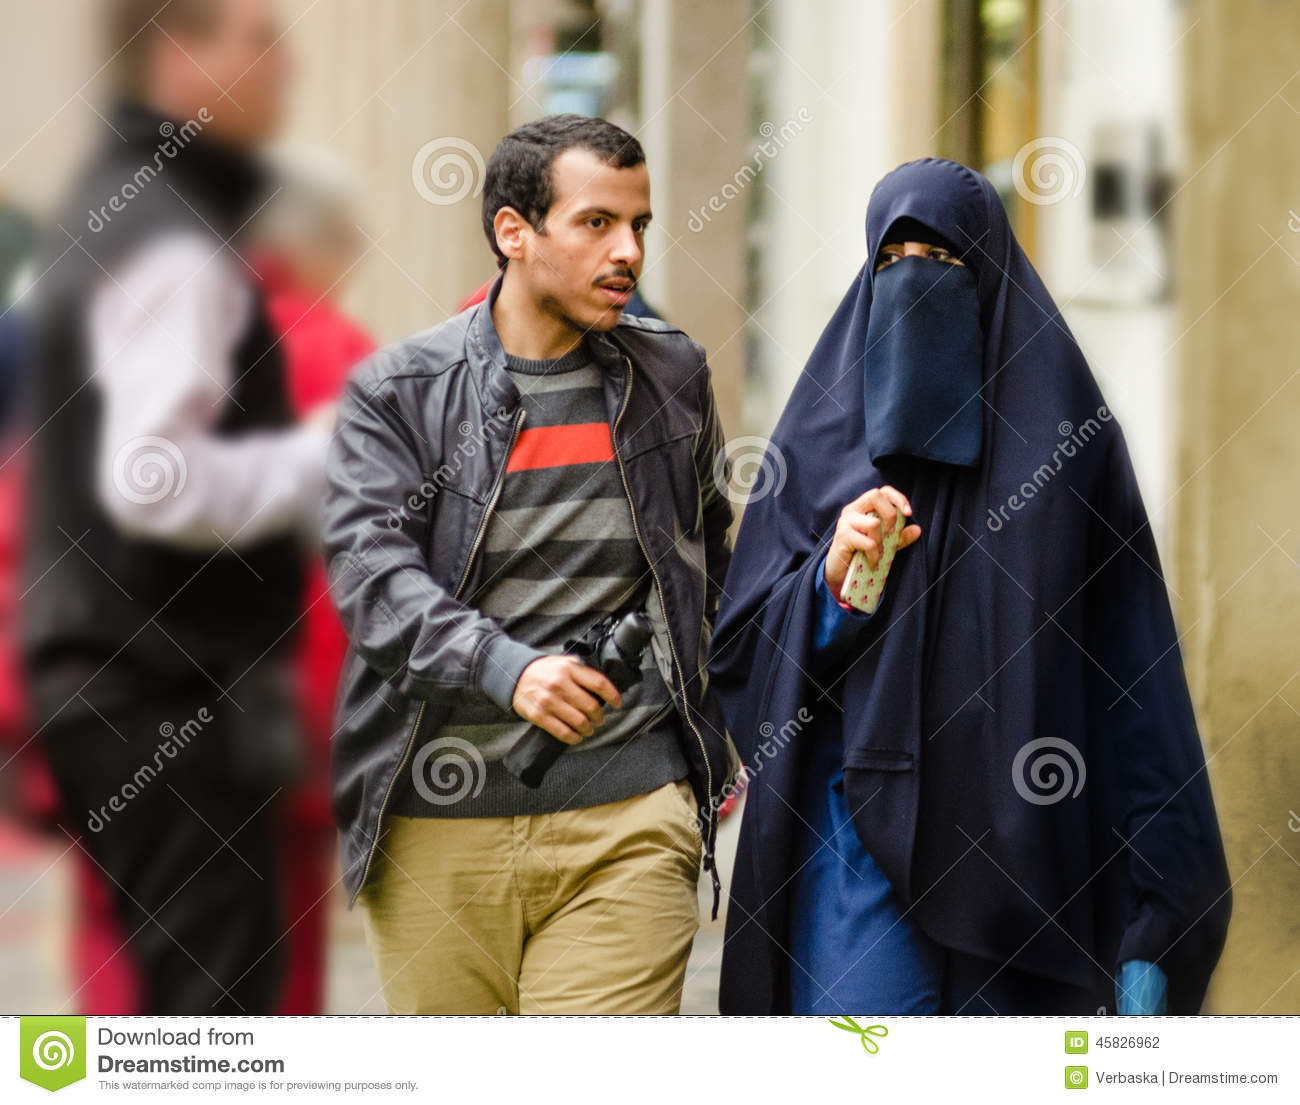 old town muslim single men If you are single and want to find a local lady for a long term relationship, the cape town women seeking men category is the place to find your new girlfriend the cape town women seeking men category is specifically for people wanting something serious, not a casual relationship or a one night stand.